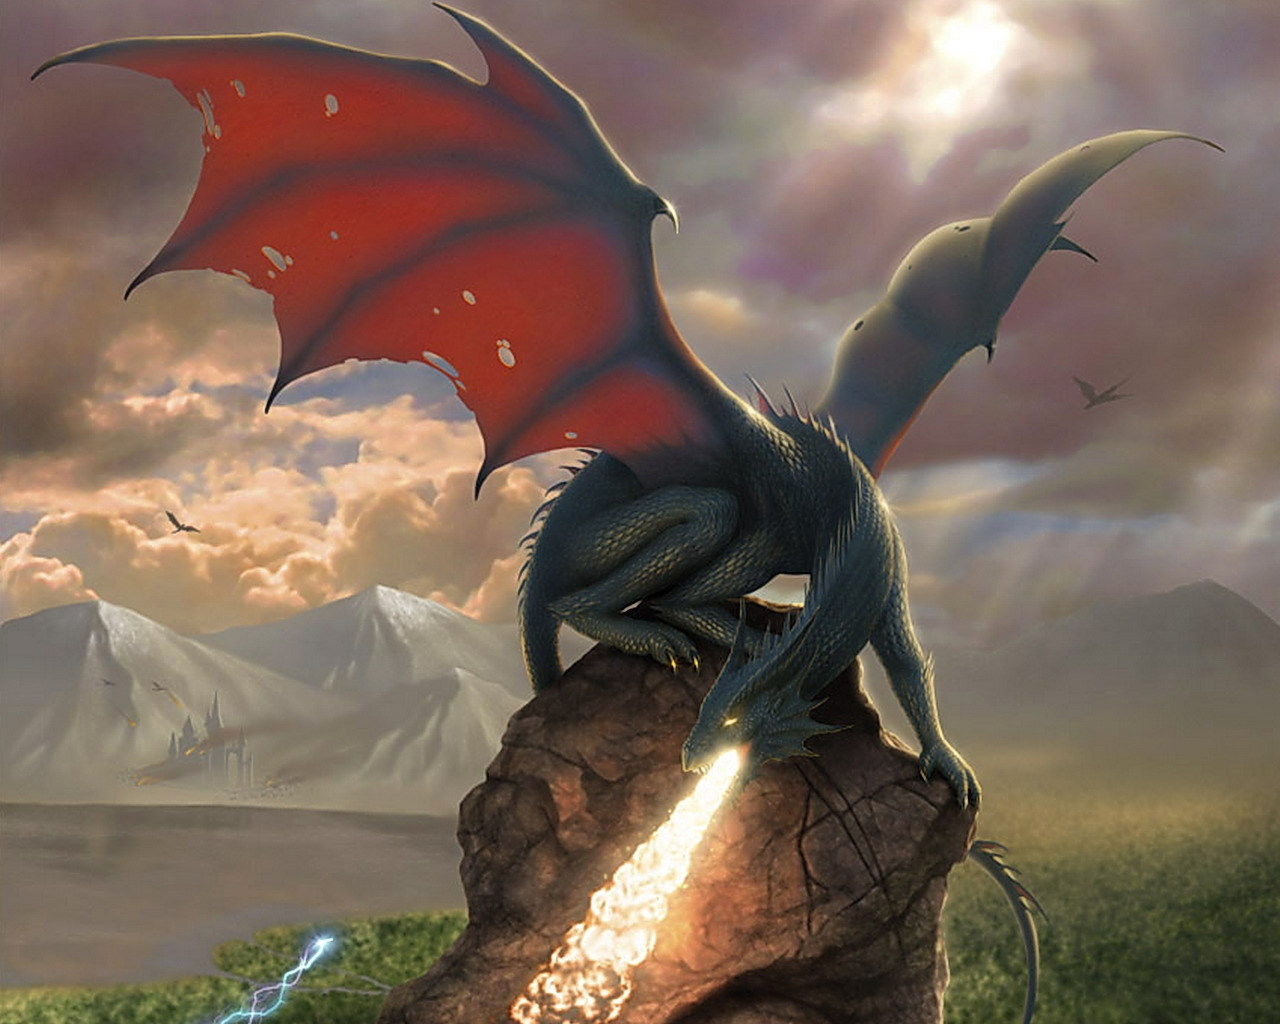 16788 download wallpaper Fantasy, Dragons screensavers and pictures for free